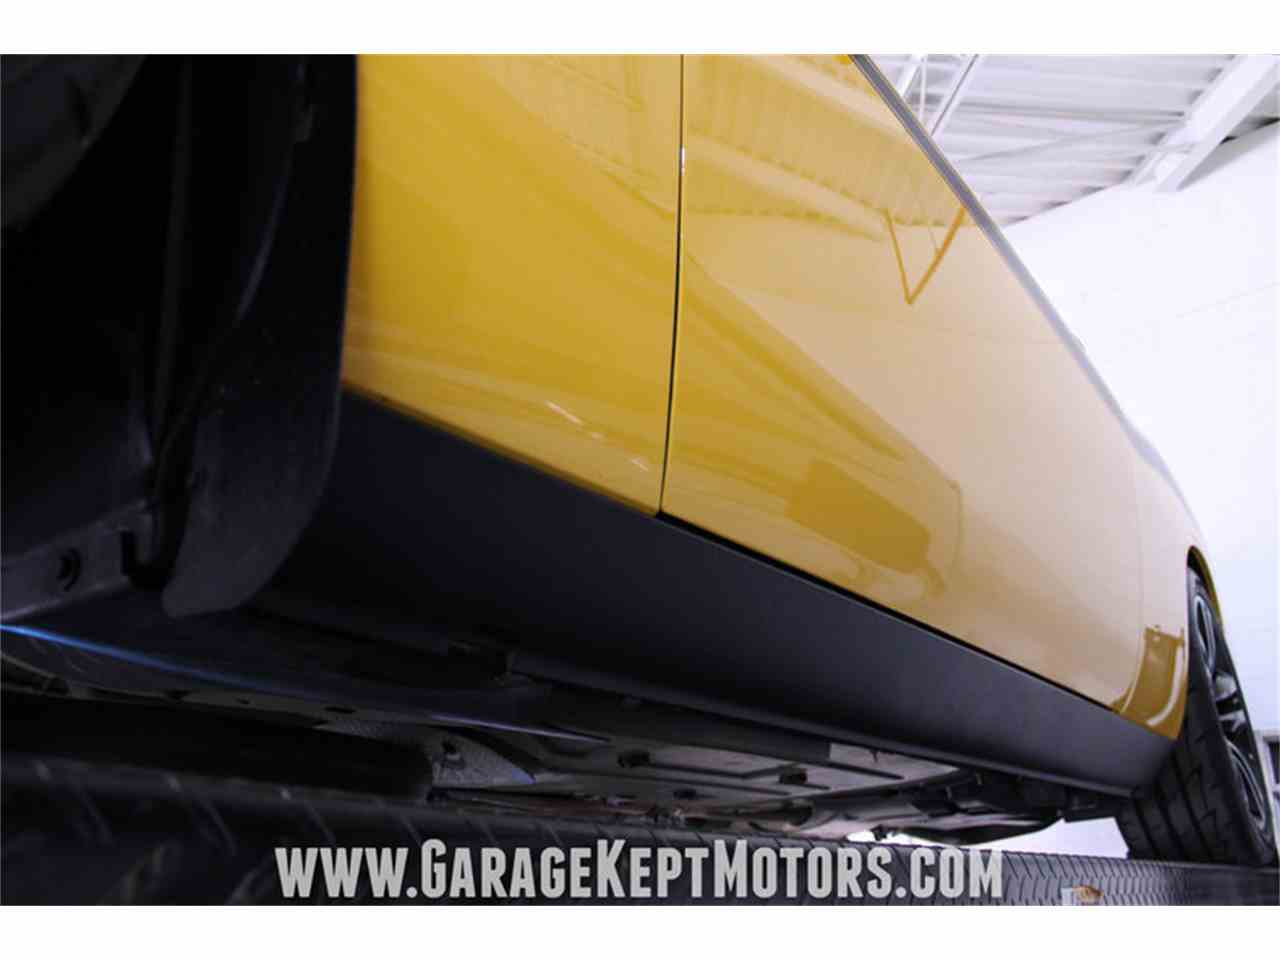 Large Picture of '12 Dodge Challenger SRT8 392 Yellow Jacket Offered by Garage Kept Motors - MAXR